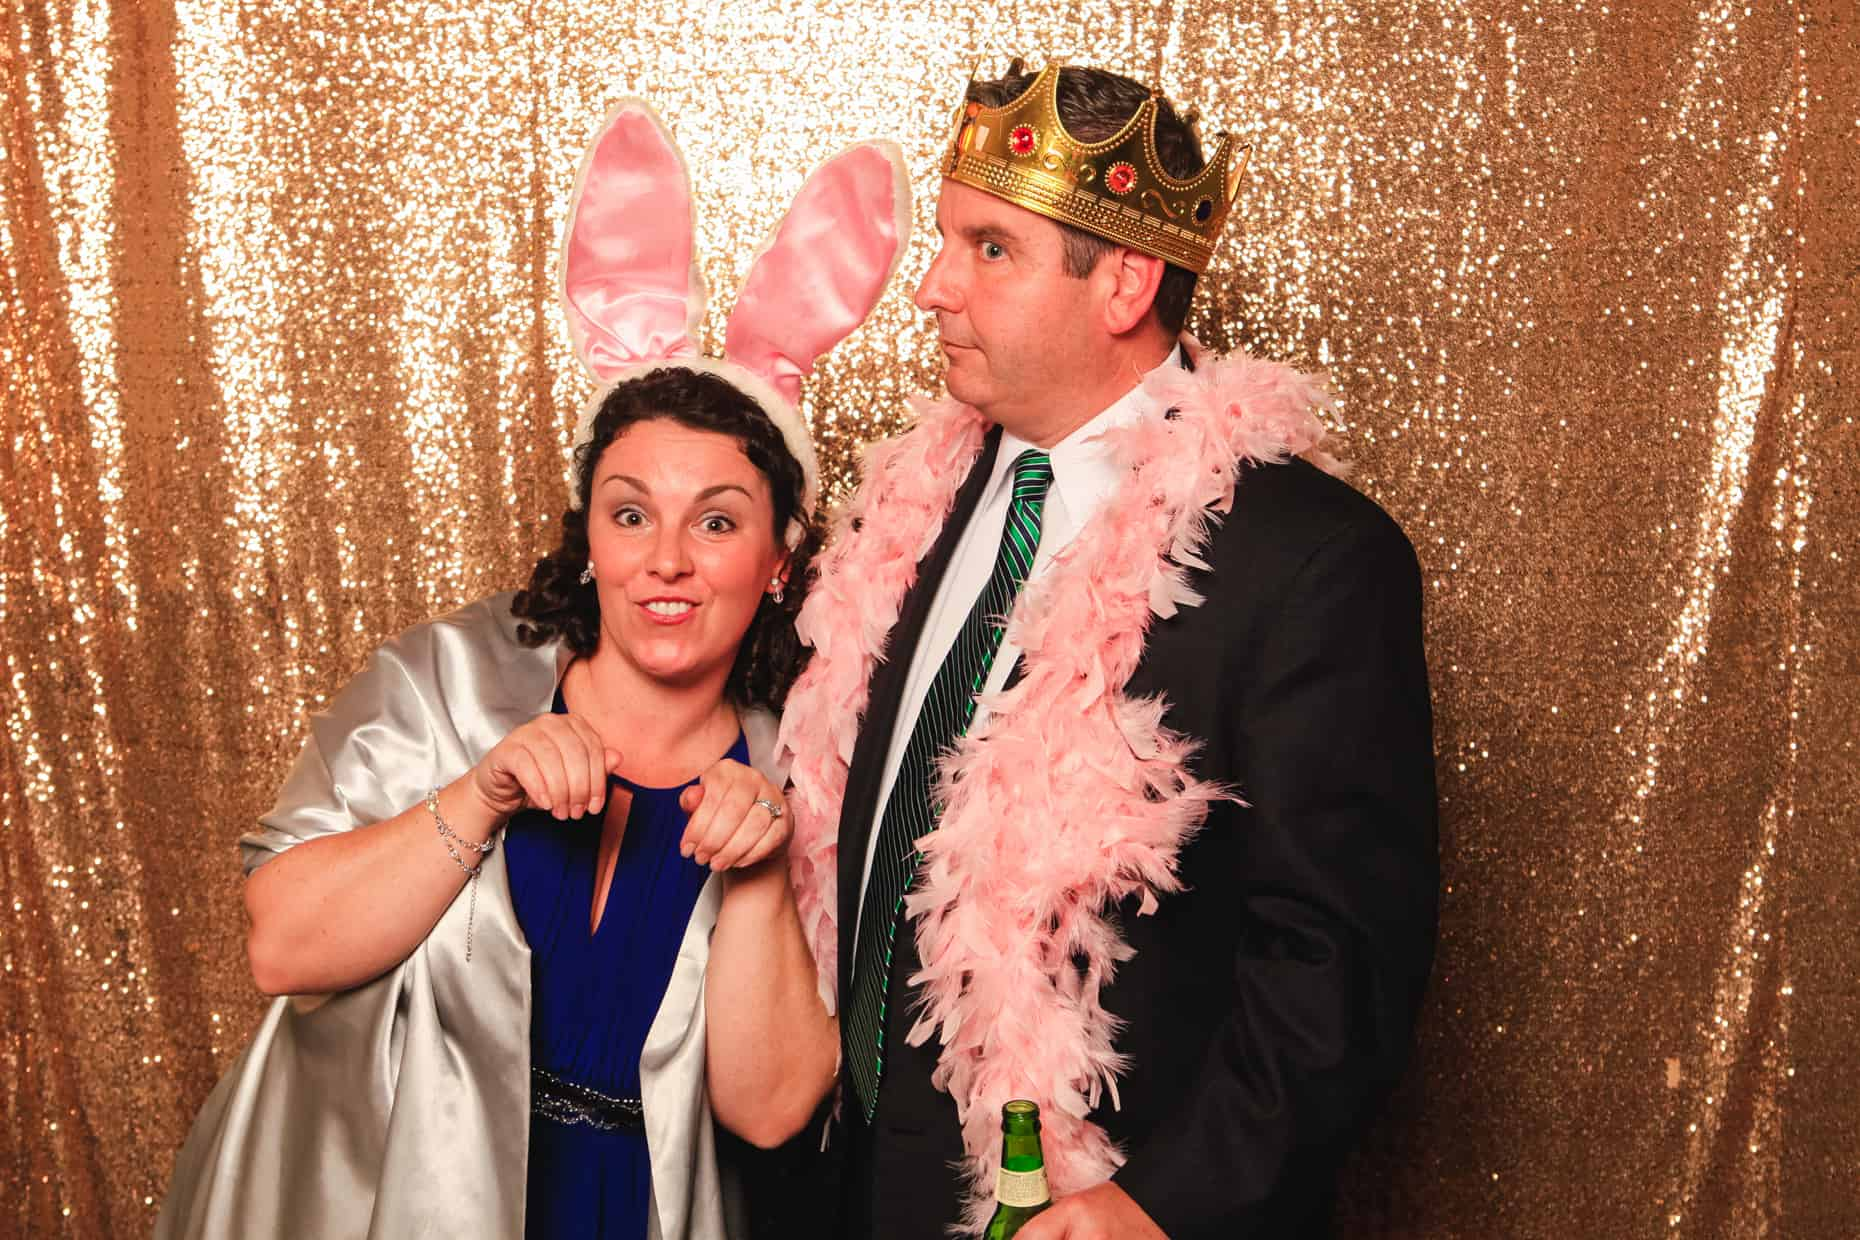 Normandy Farm Photo Booth